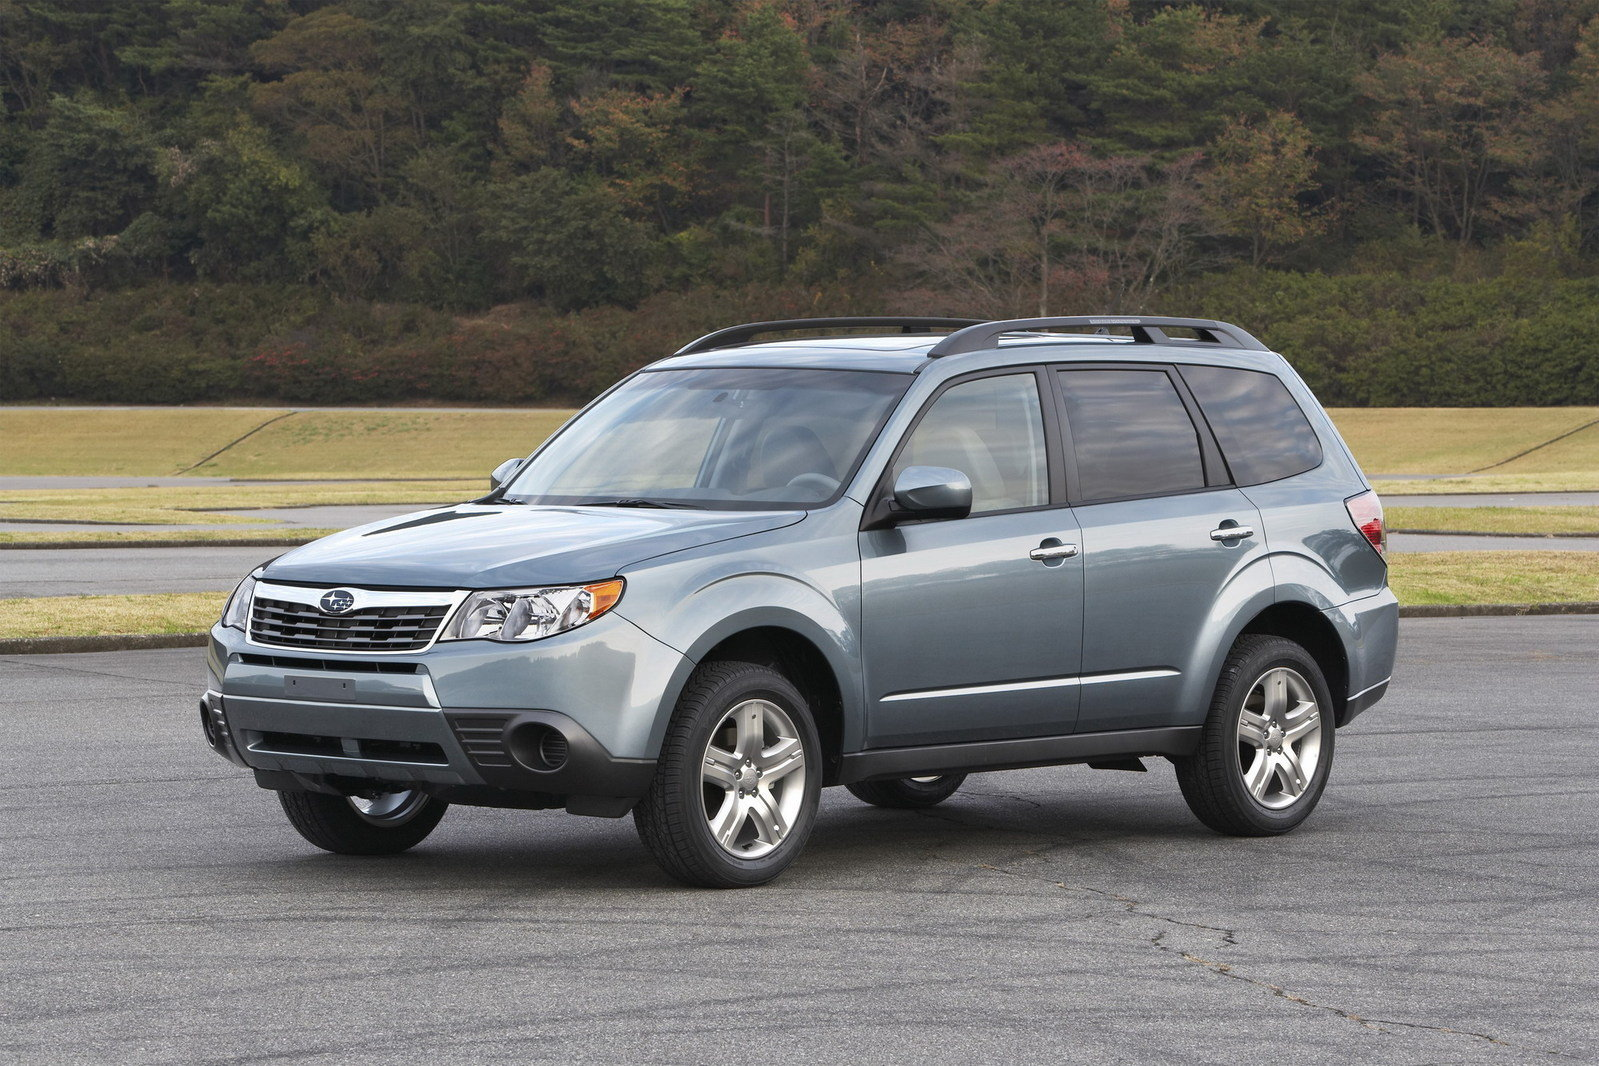 2011 Subaru Forester Review - Top Speed